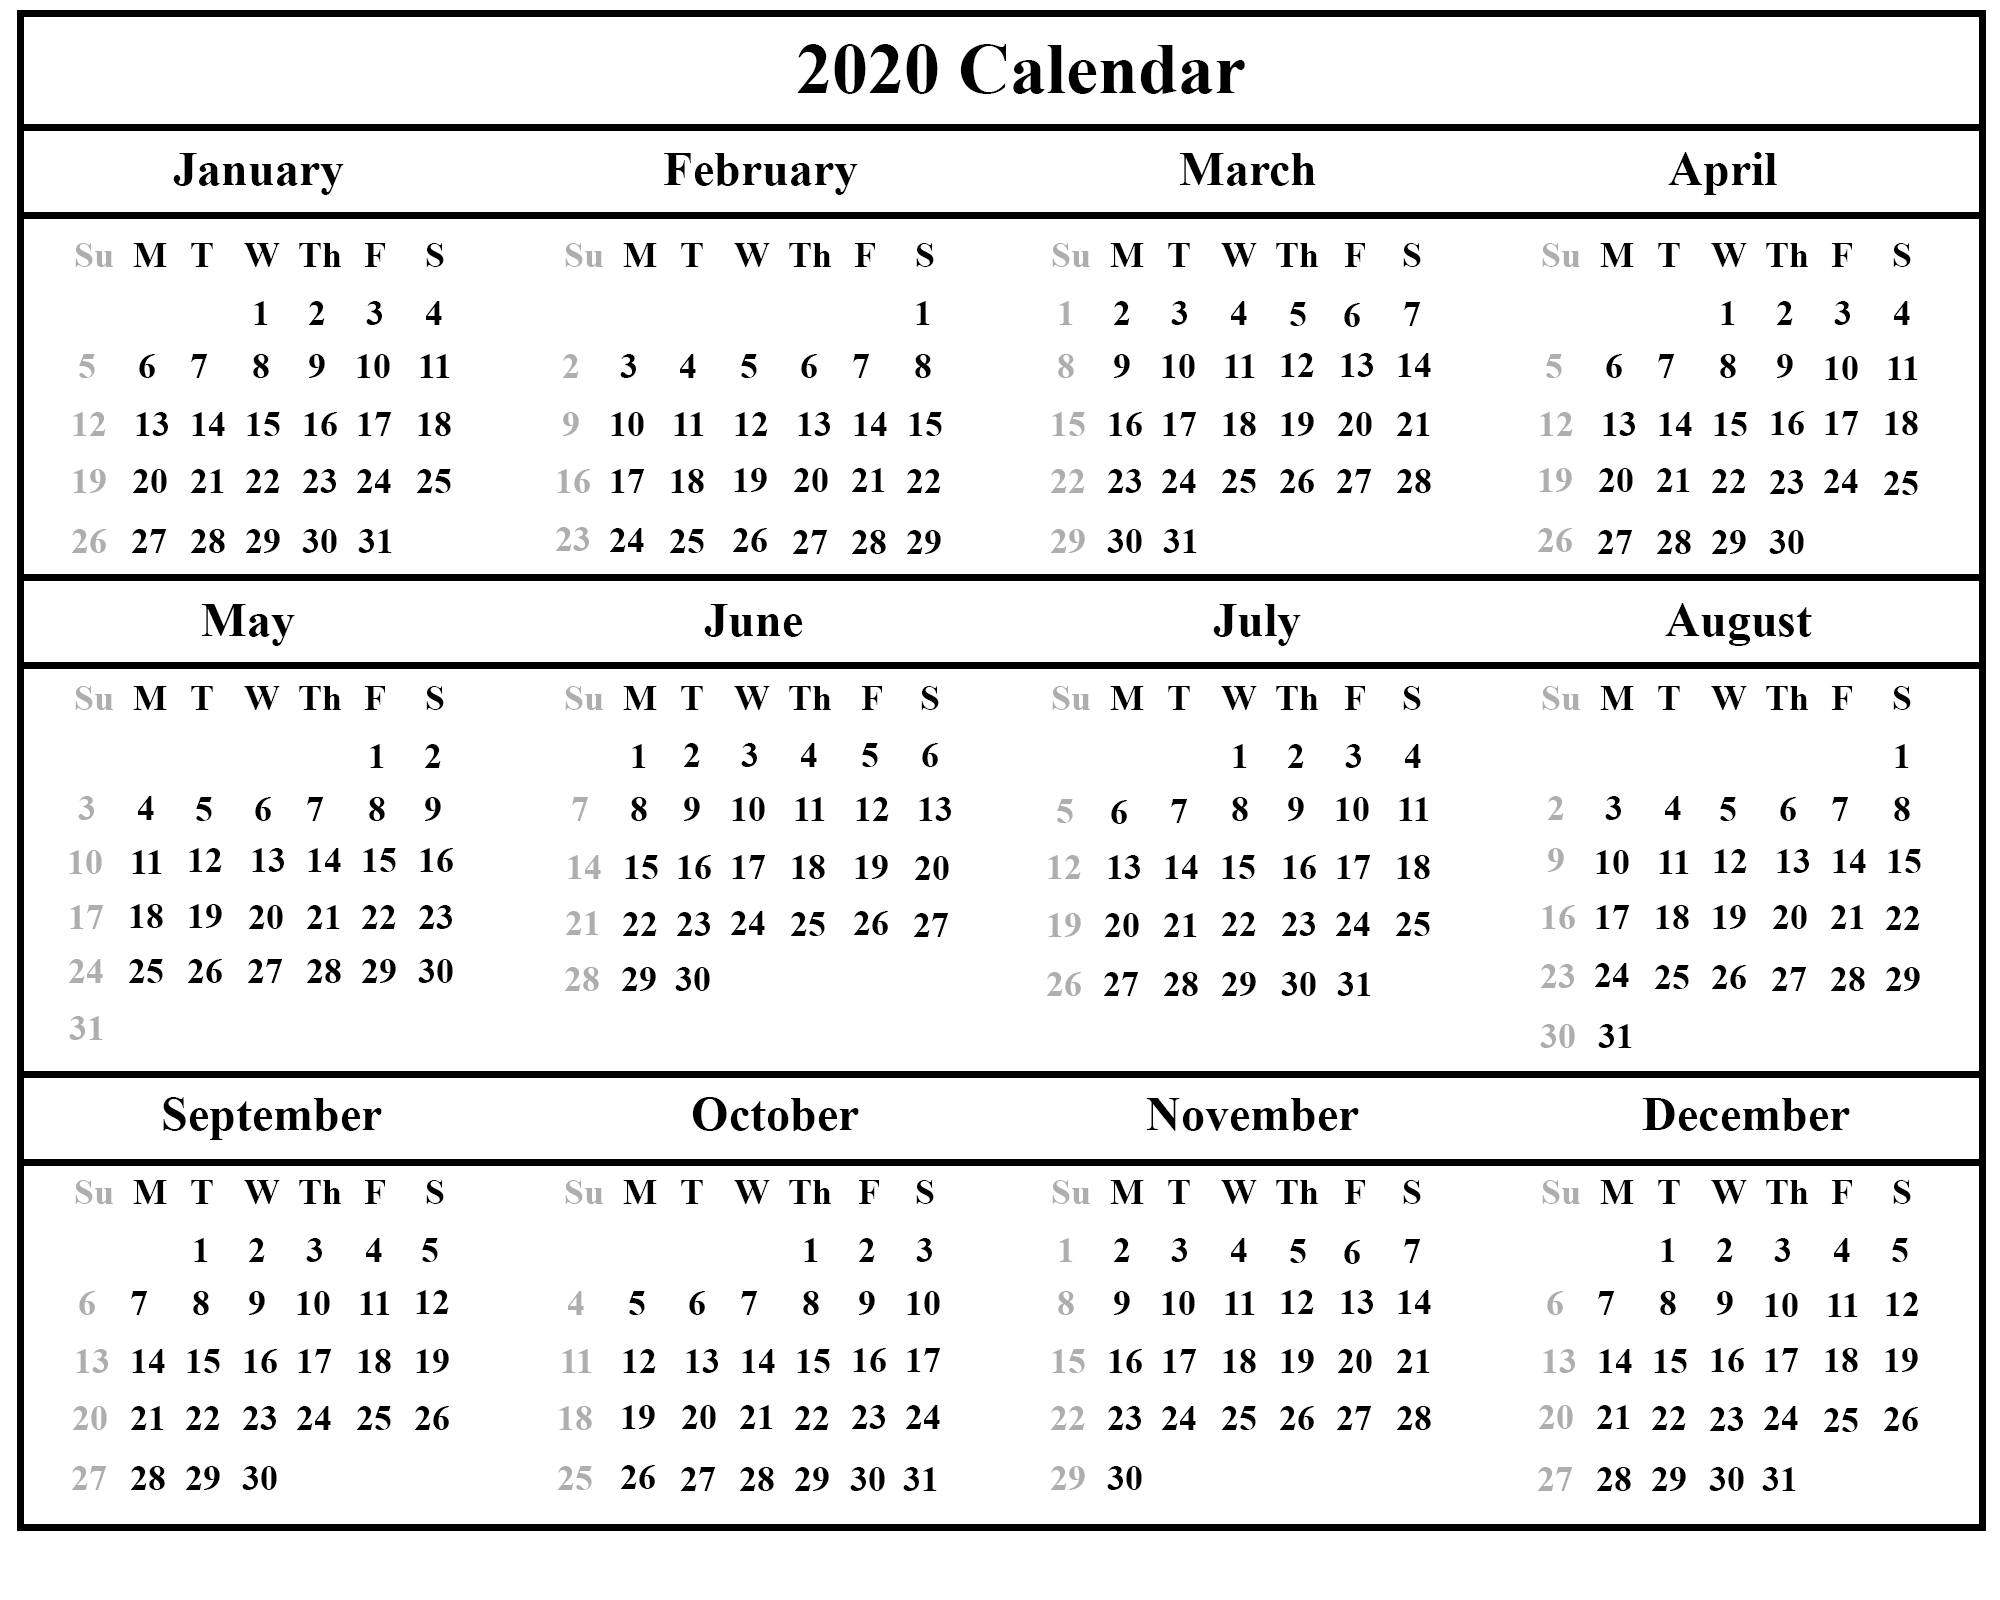 graphic regarding Printable 2020 Calendar named Printable On a yearly basis Calendar 2020 Template With Vacations [PDF